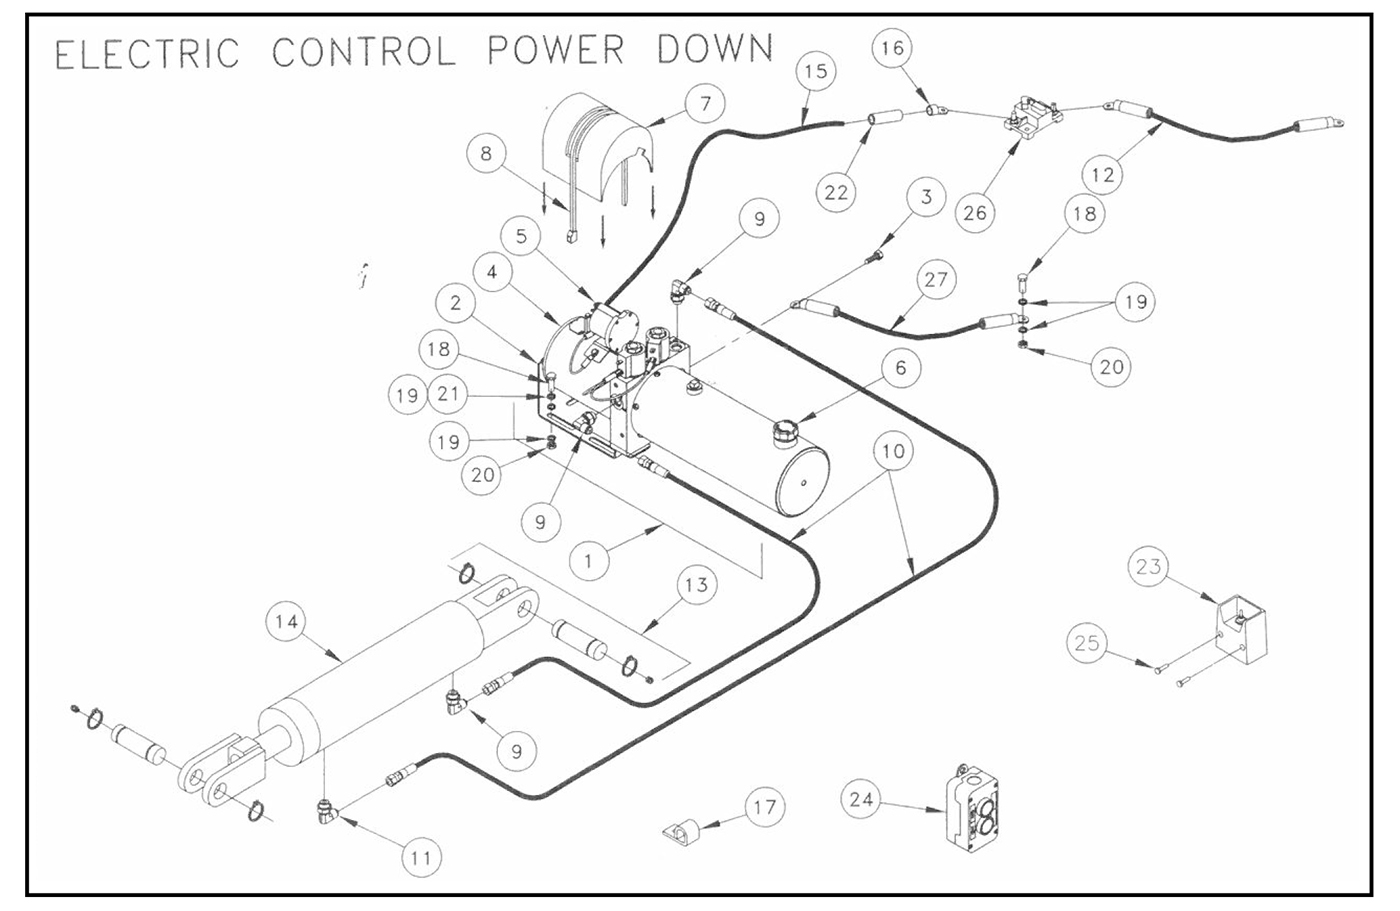 TWL125/16/20 Pump Assembly (Electric Control, Power Down) Diagram